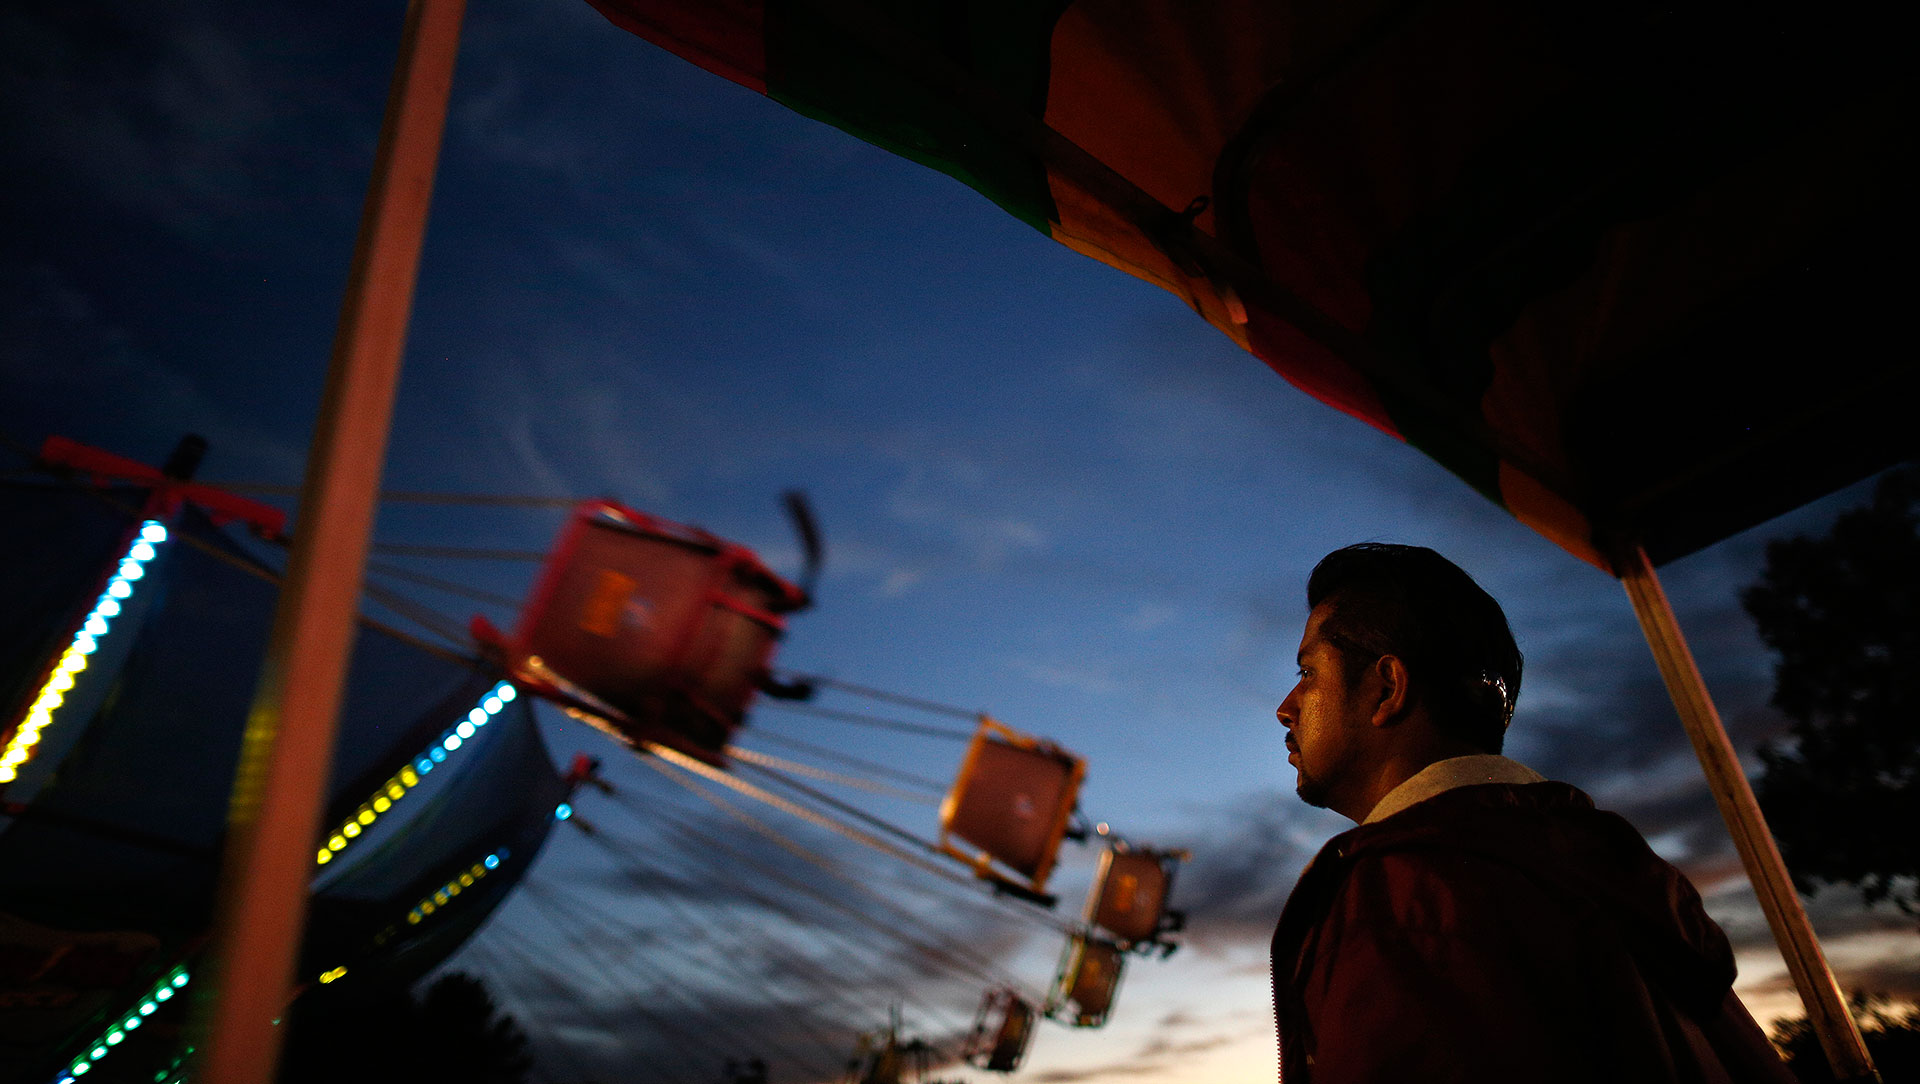 U S Carnivals Increasingly Rely On Mexican Workers To Operate Shows